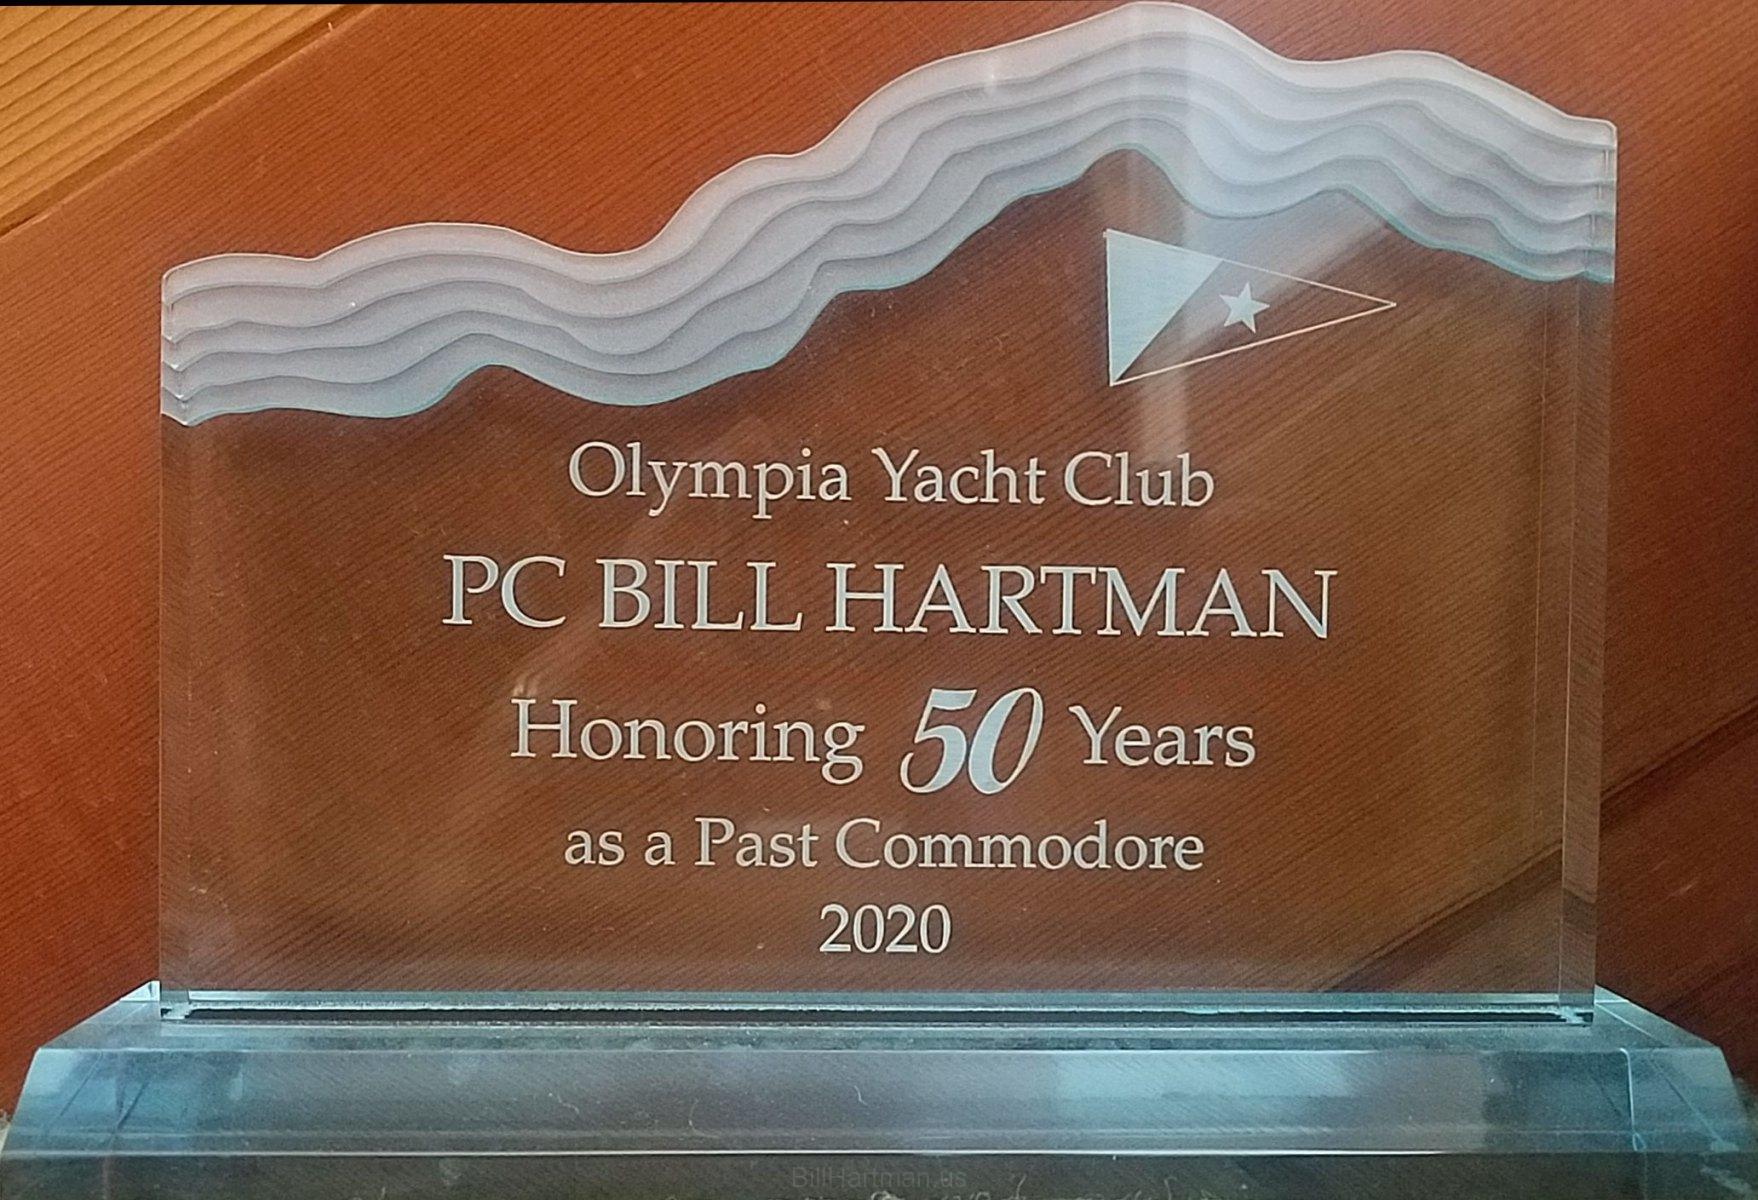 Olympia Yacht Club -- 50 years as Past Commodore